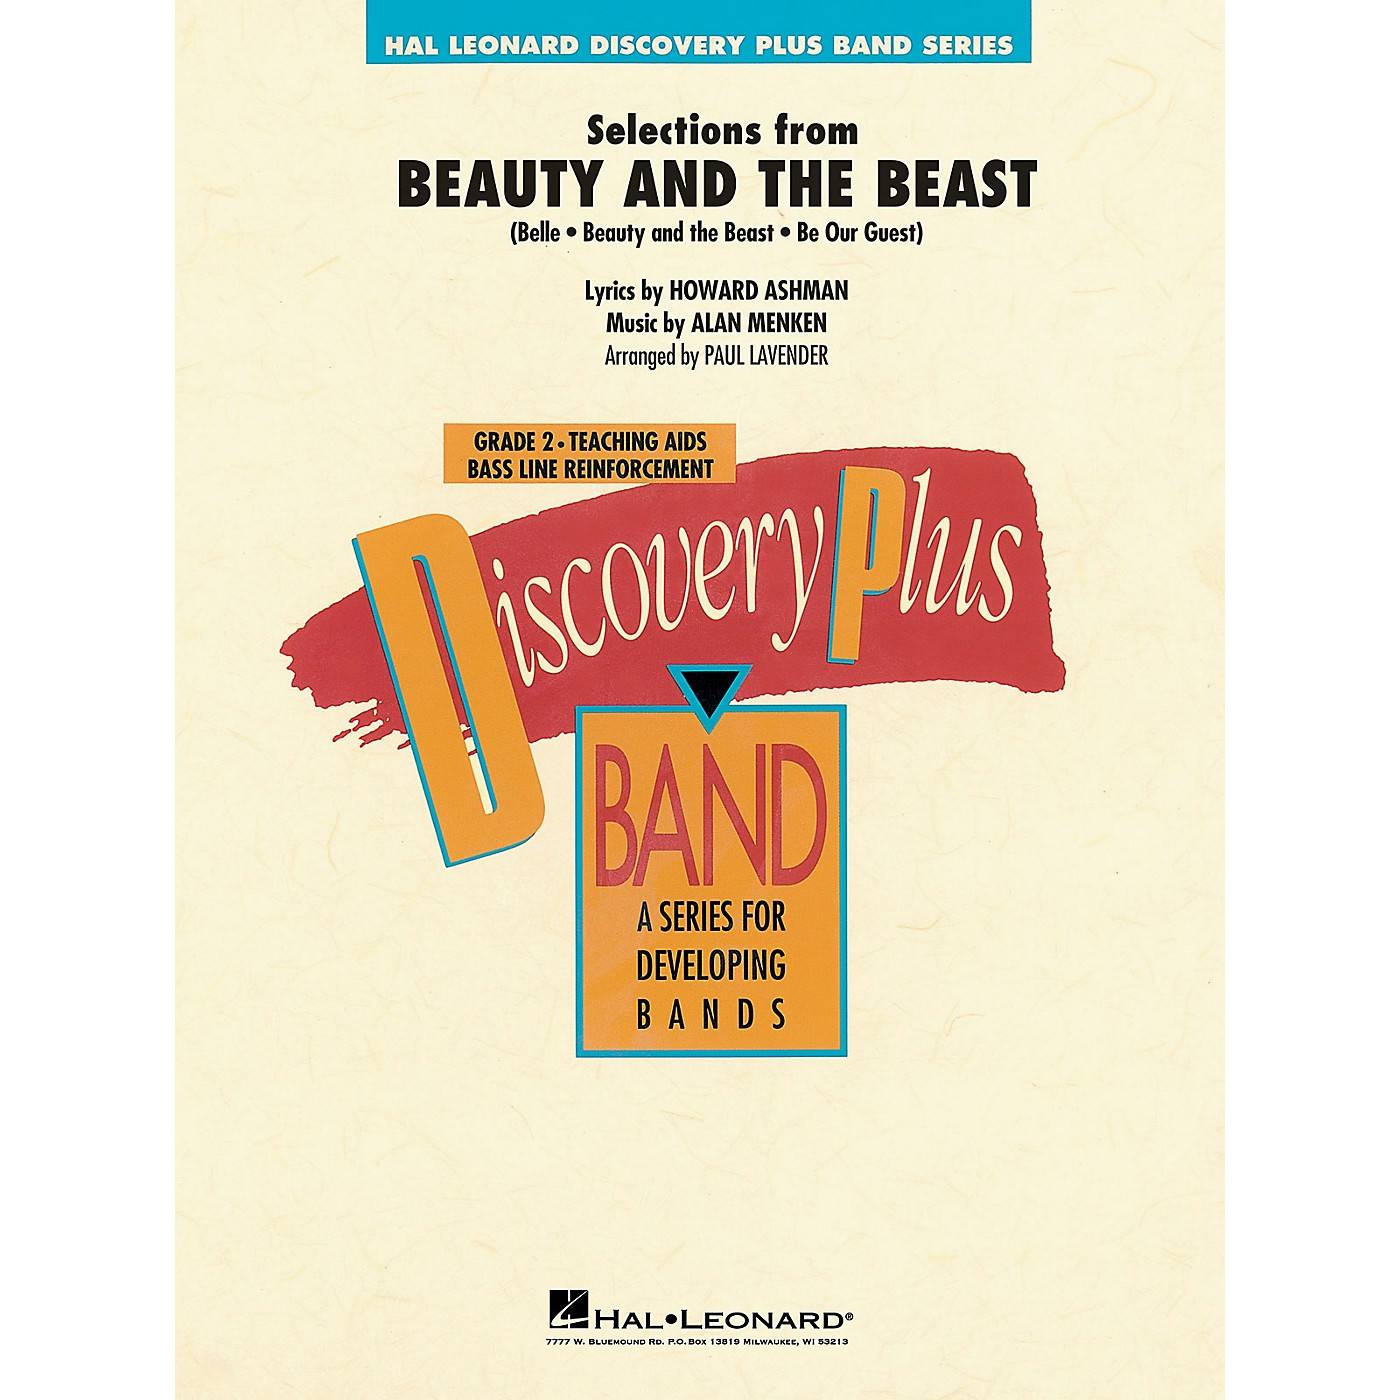 Hal Leonard Beauty and the Beast, Selections from Concert Band Level 2 Arranged by Paul Lavender thumbnail